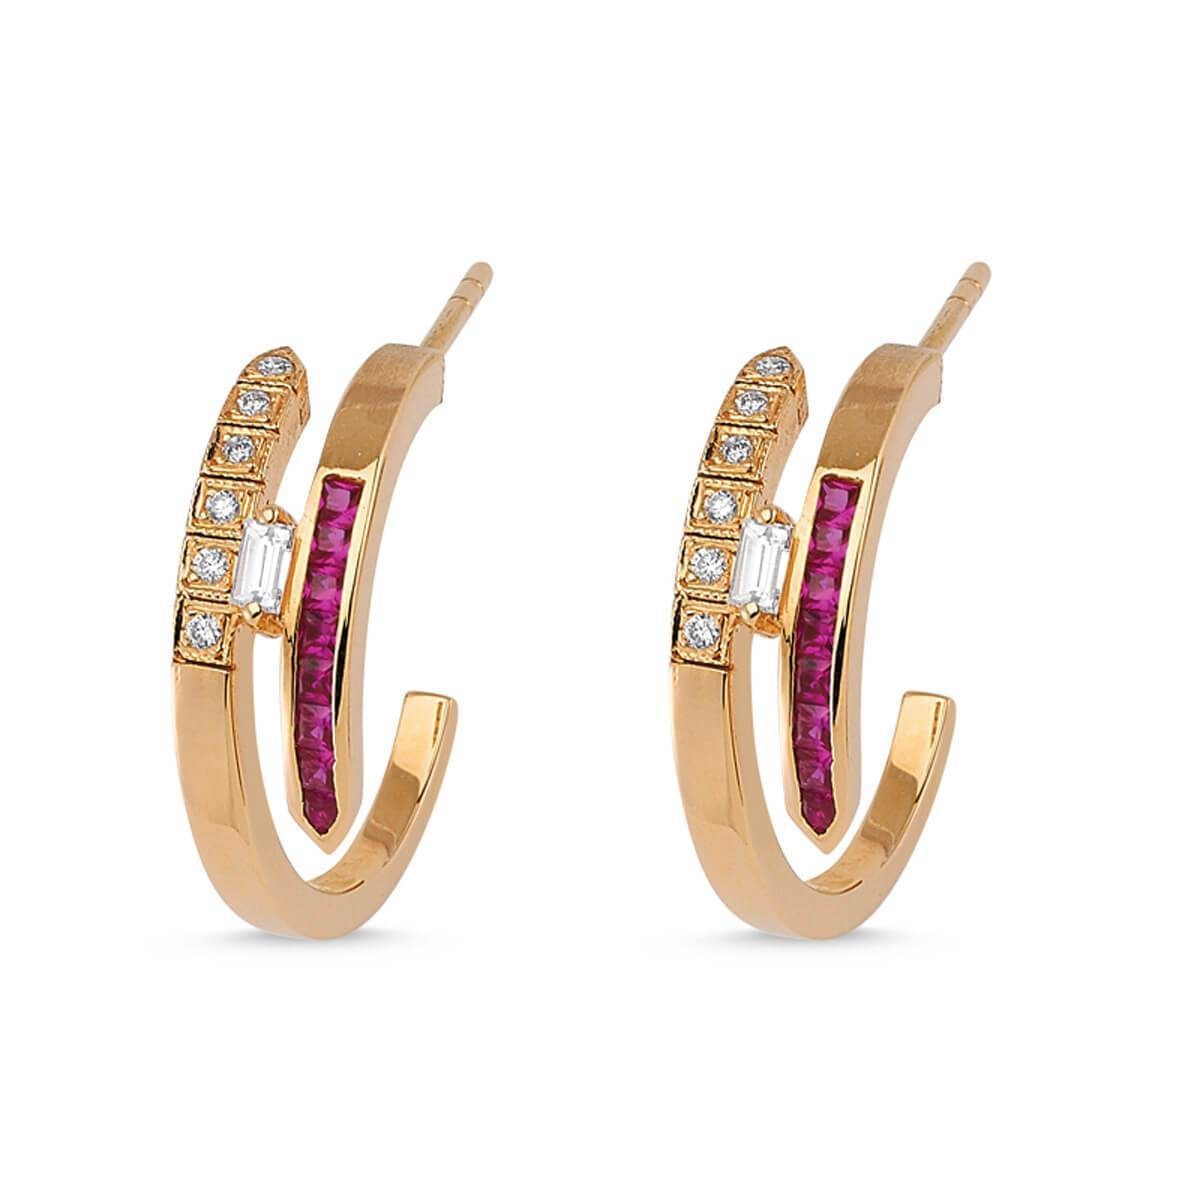 LOVE RUBY ETERNITY HOOP EARRINGS